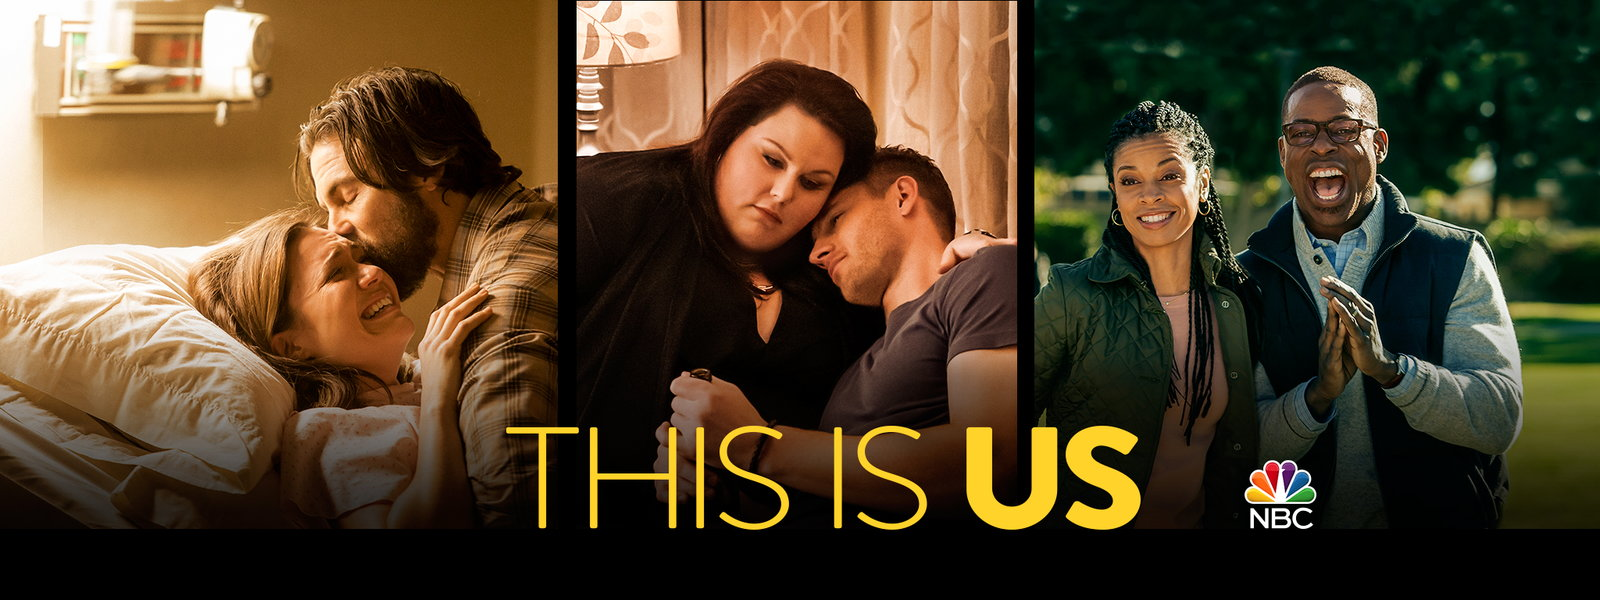 How This Is Us Hooked Audiences In Season 1, And Why The Show Must Change Going Forward.